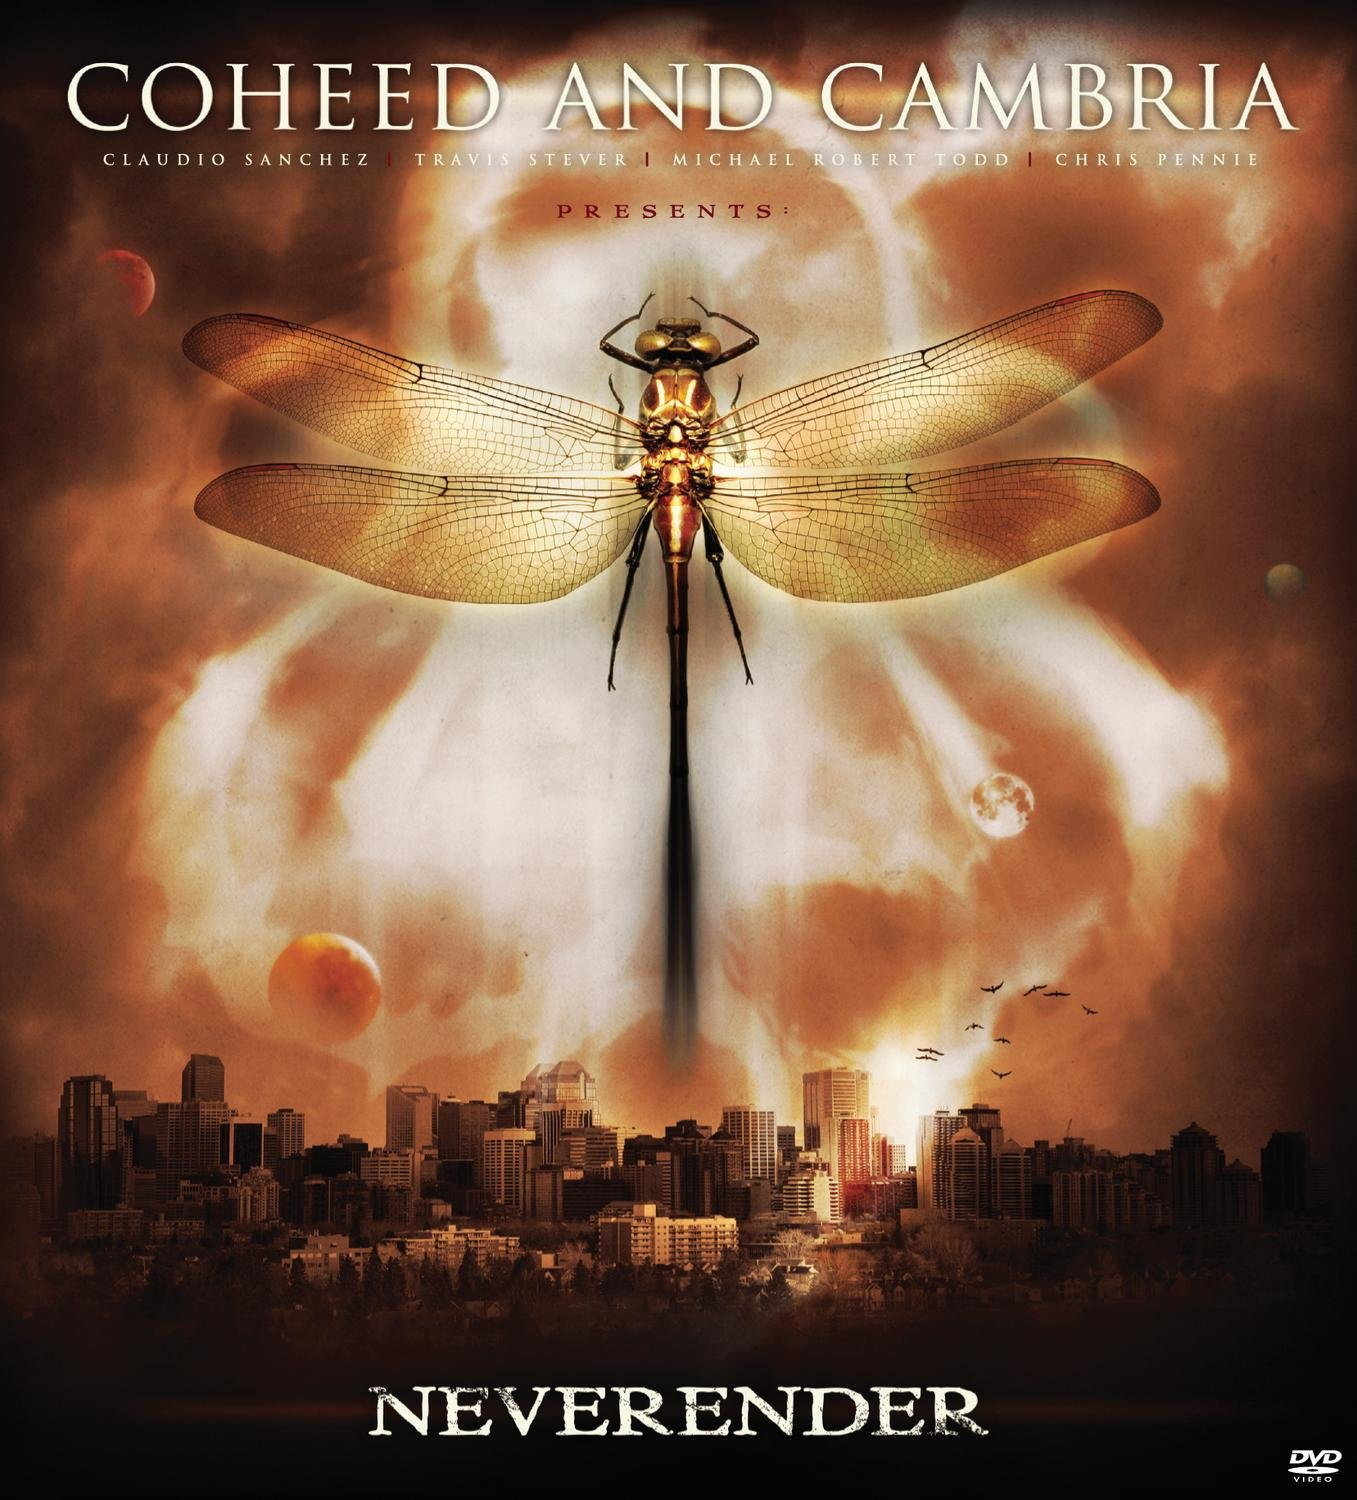 DVD : COHEED AND CAMBRIA - Neverender [explicit Content] (DVD)